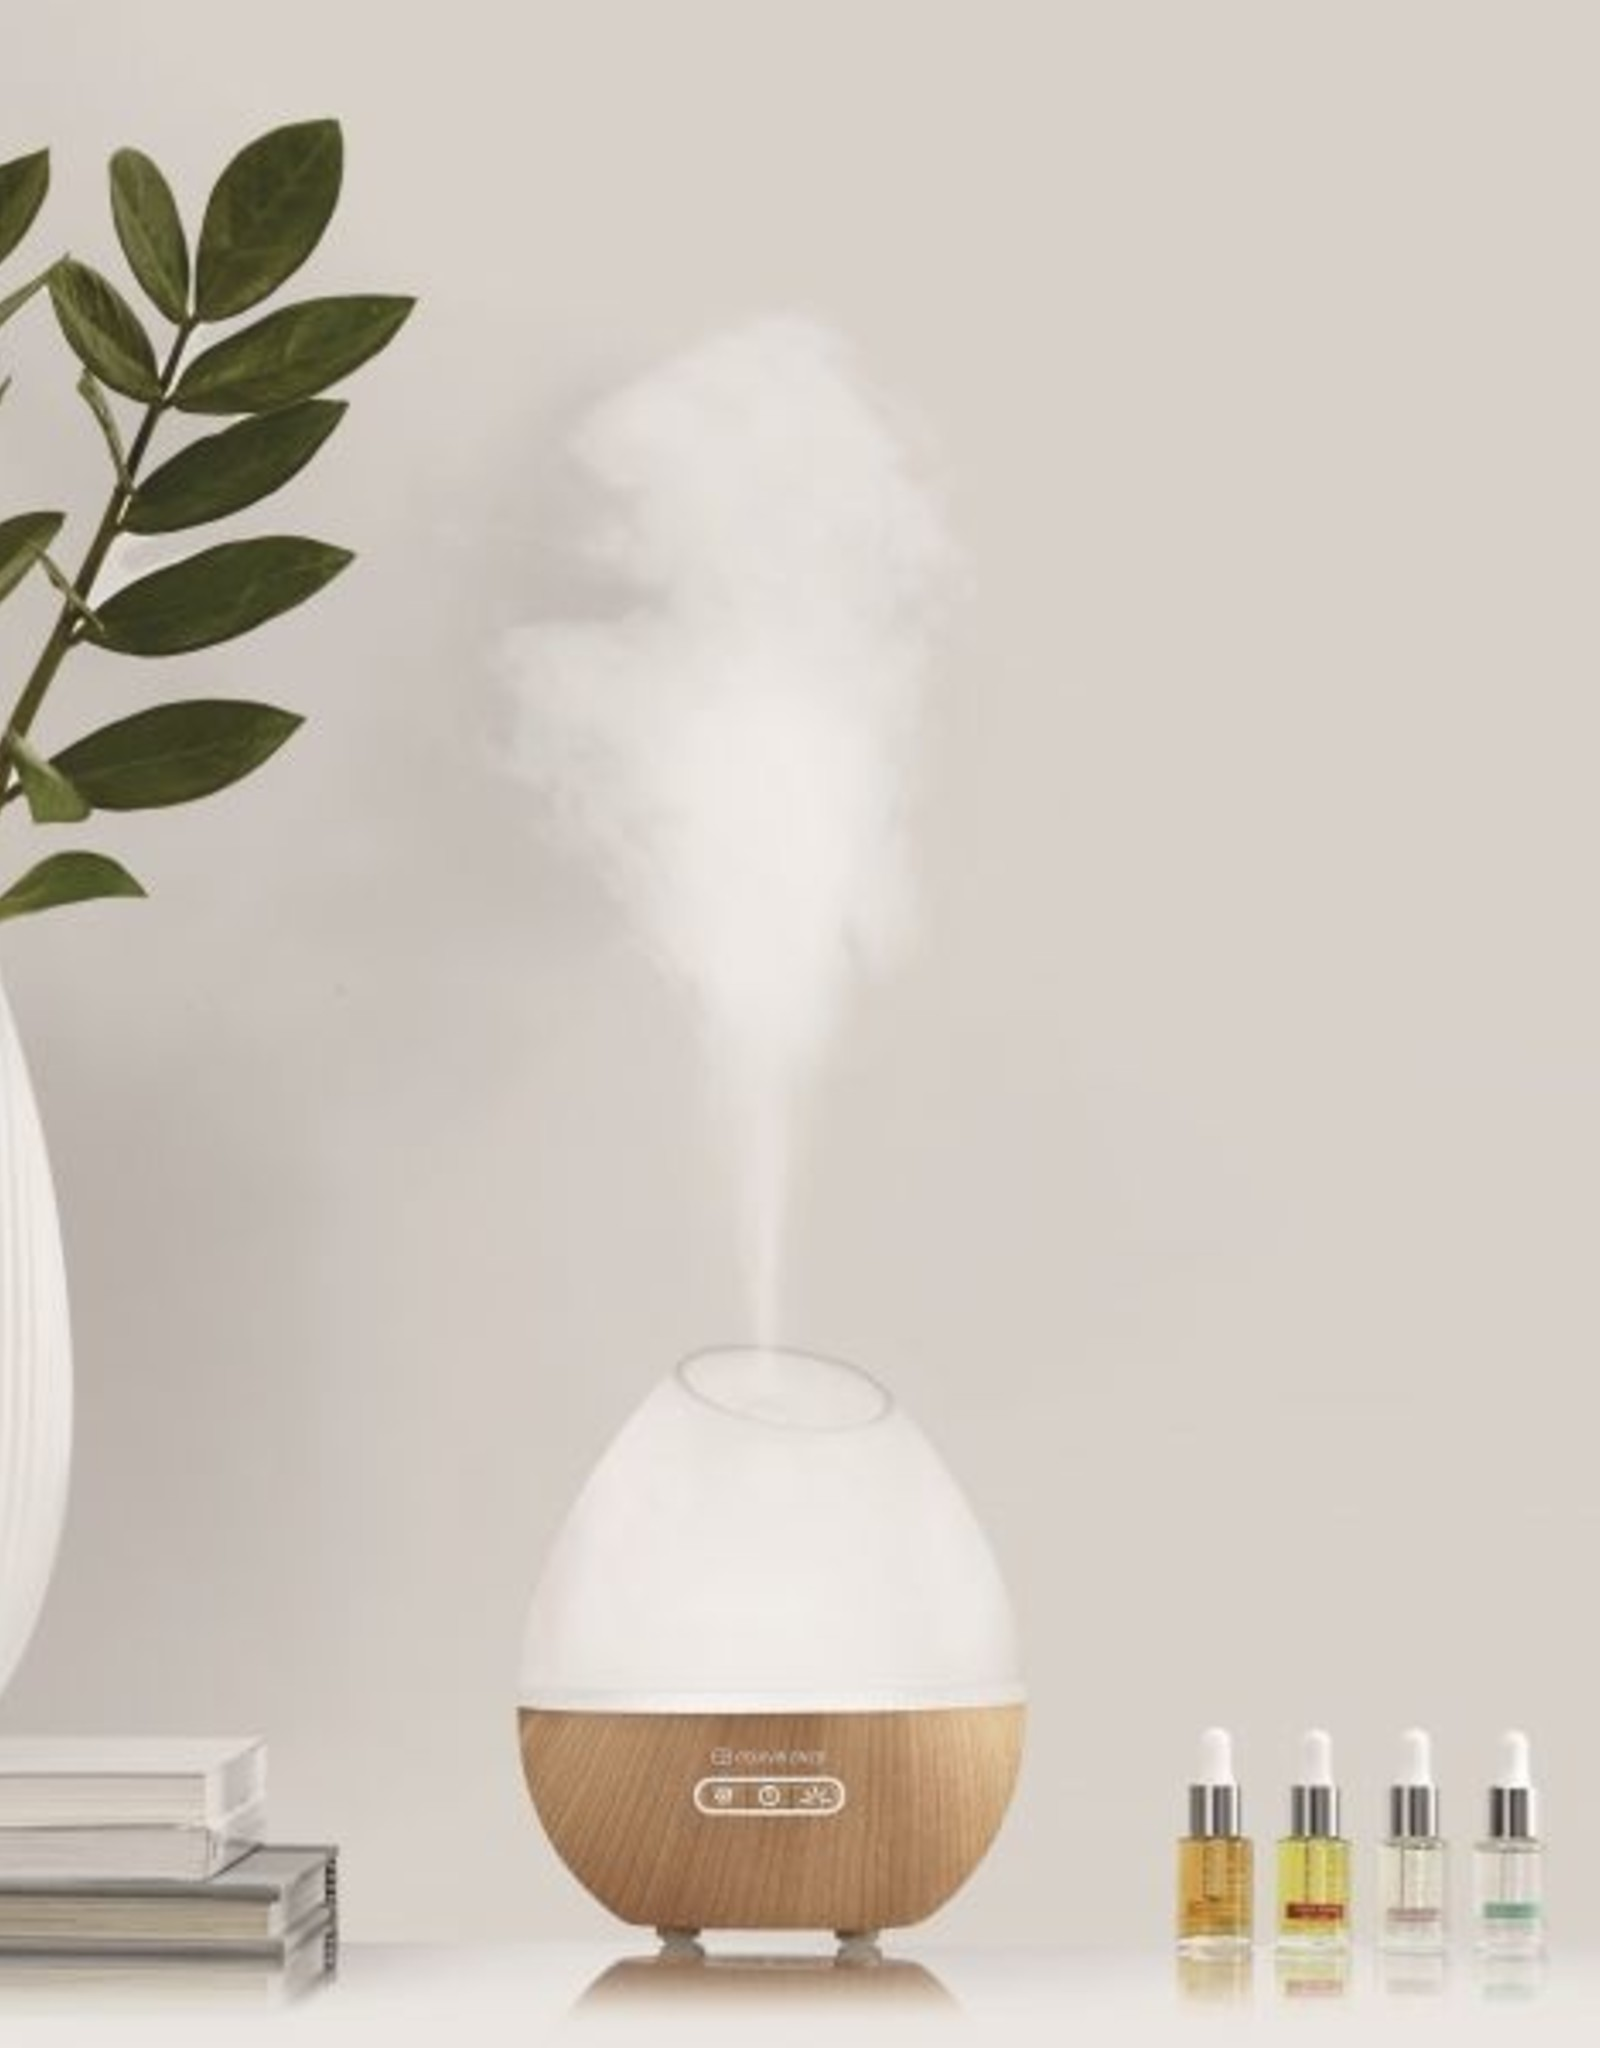 Equivalenza DROP – Ultrasonic Aromatic Diffuser